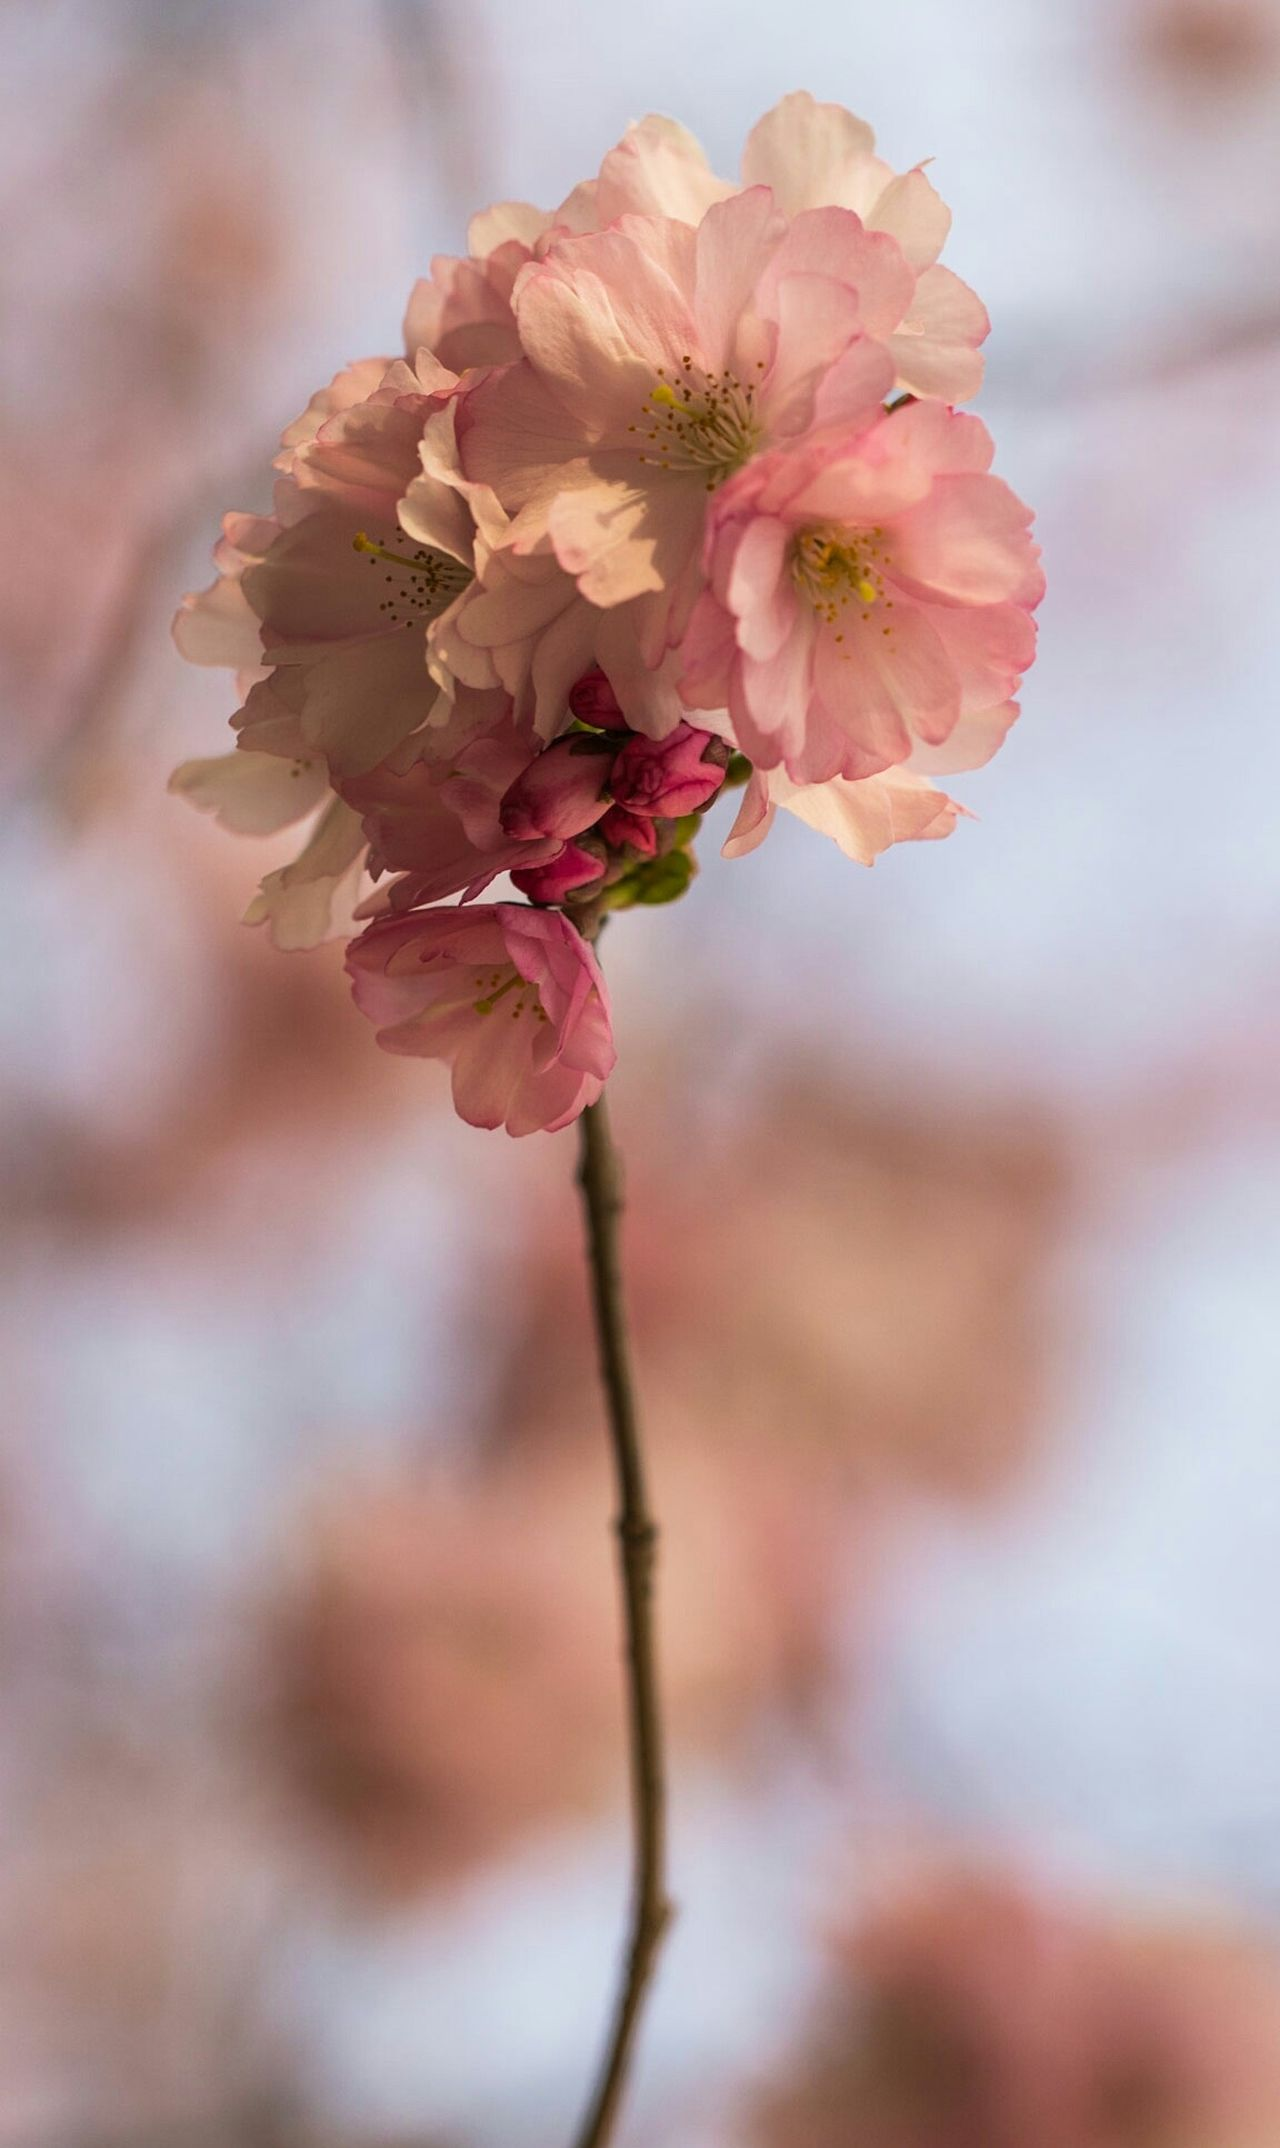 ~🌸🌿~ Flower Nature Flower Head Beauty Close-up Beauty In Nature Plant Blossom Freshness Springtime Fragility Outdoors Growth No People Day Colors Getting Inspired Plants 🌱 Life Details Nature Photography Nature_collection Nature On Your Doorstep Natural Pattern Pink Color